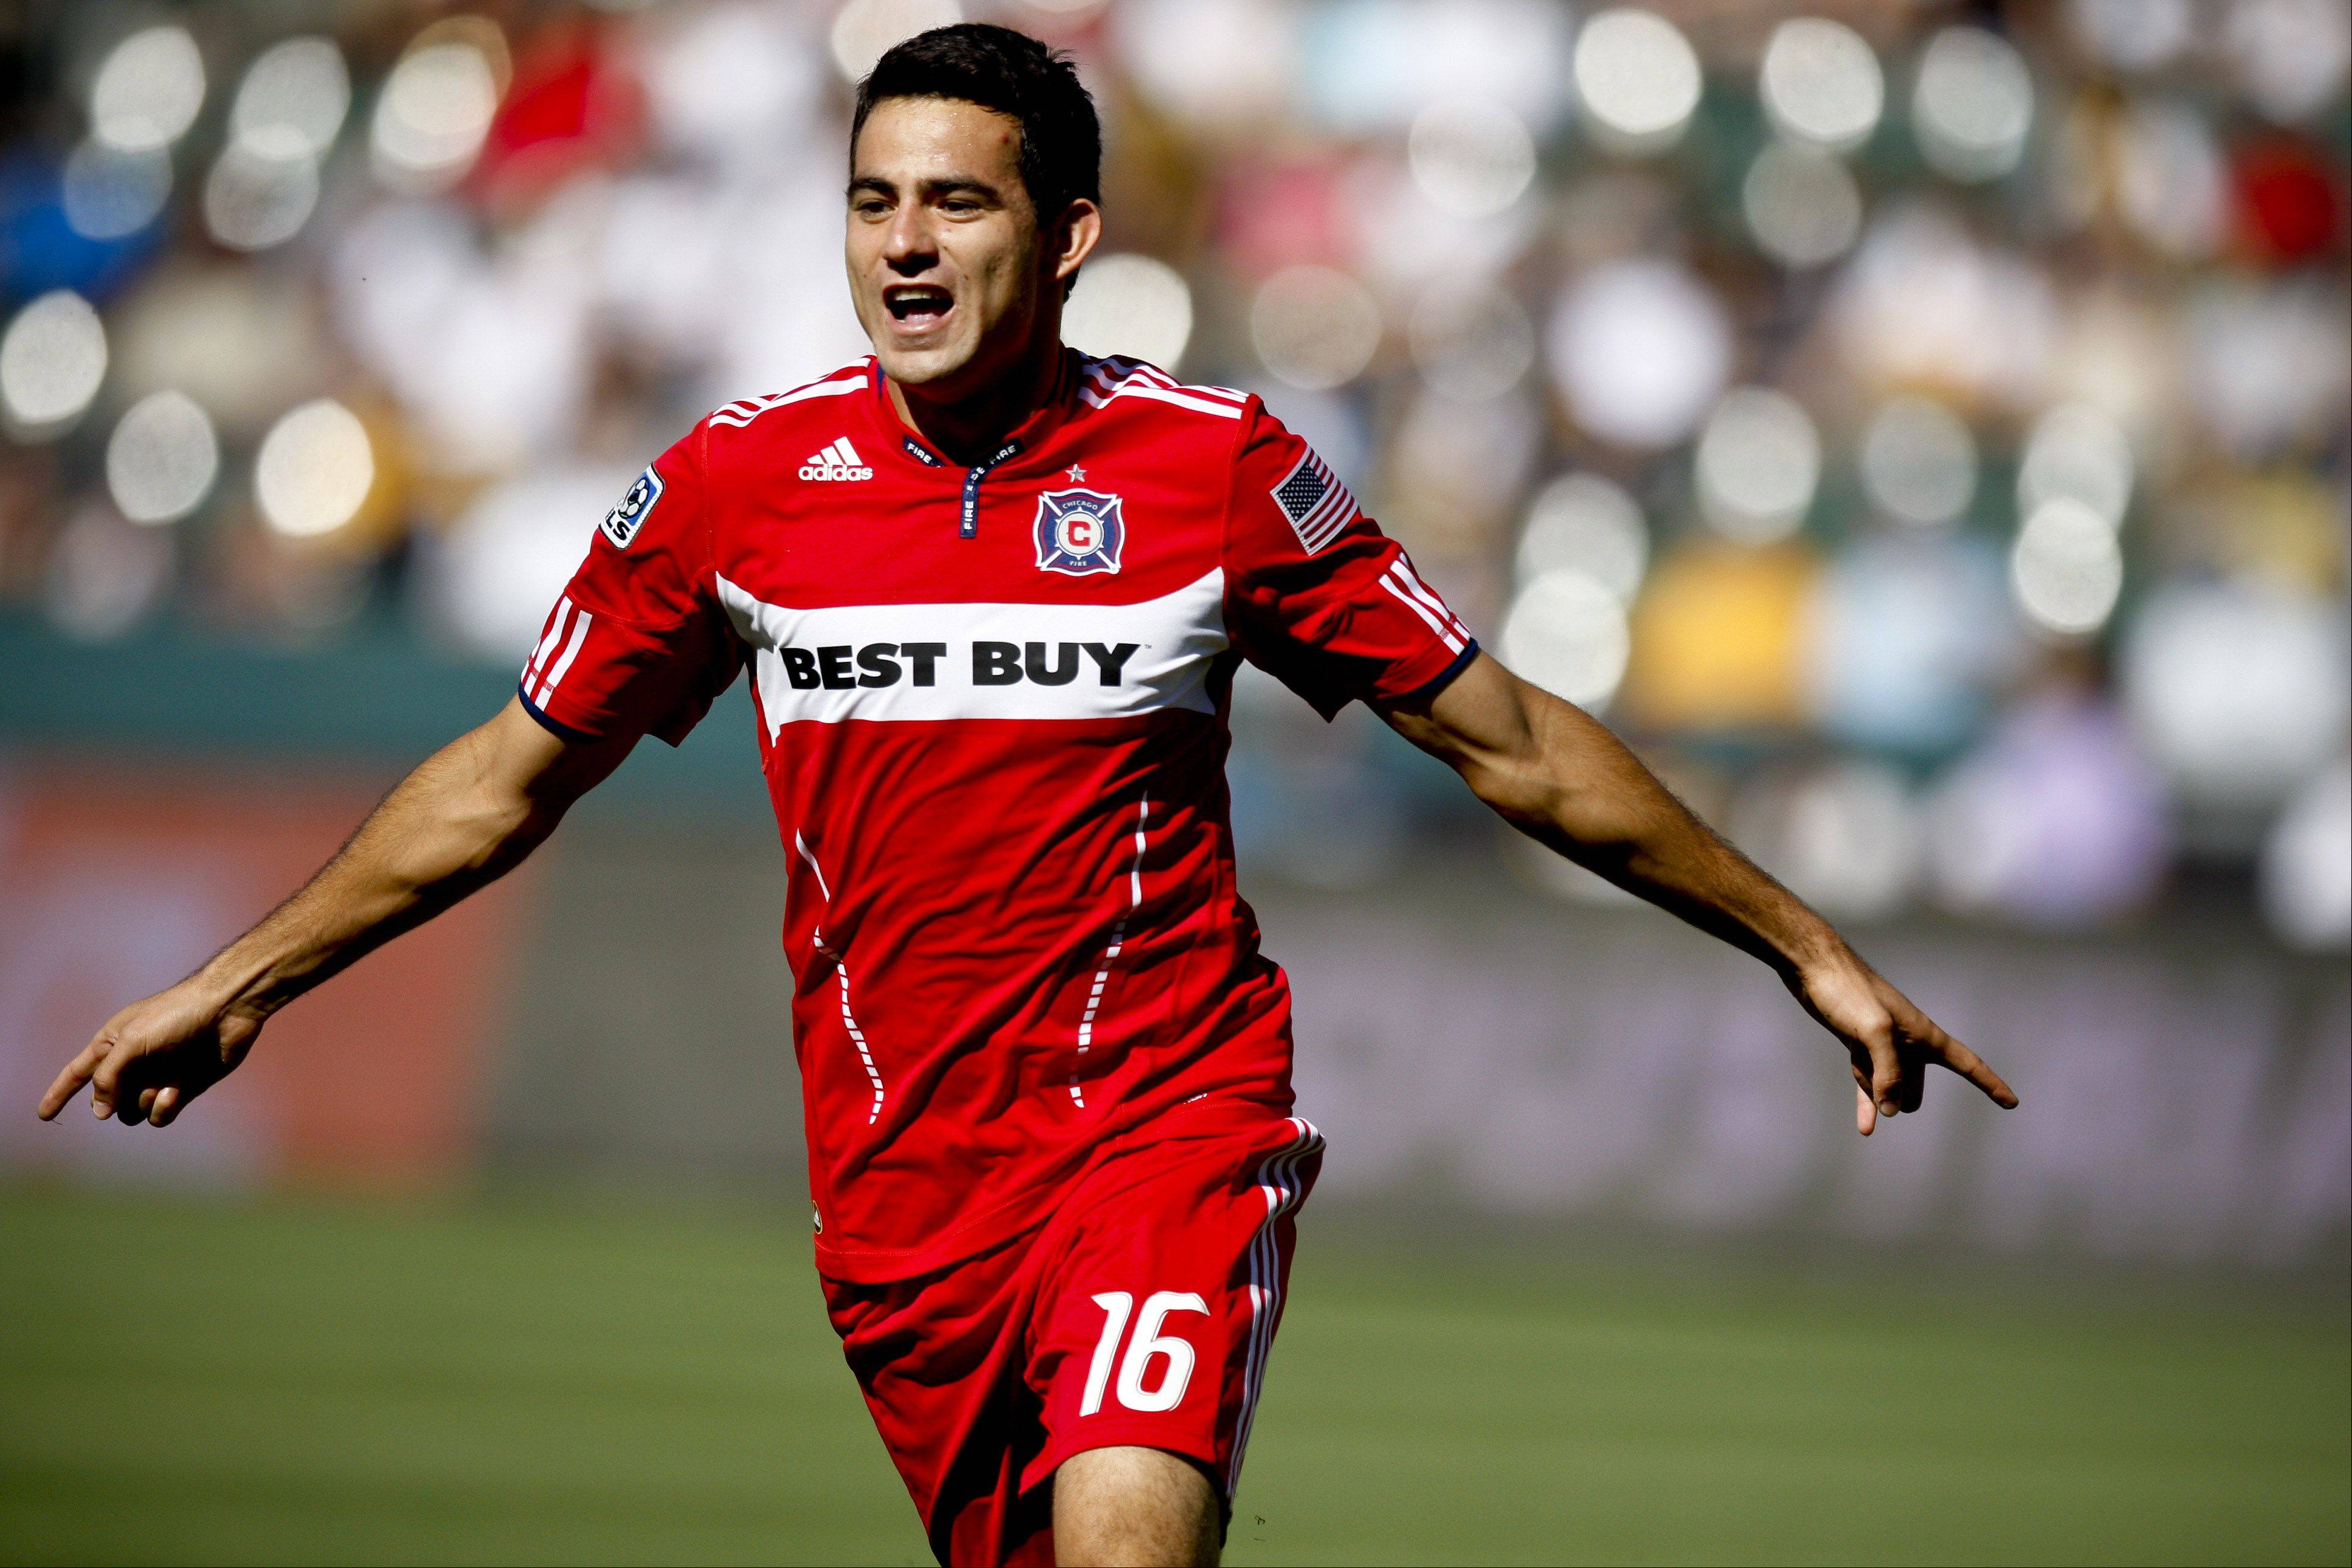 Chicago Fire midfielder Marco Pappa celebrates scoring another goal. After 26 goals with the Fire since 2008, the club has transferred Pappa to Dutch side SC Heerenveen.